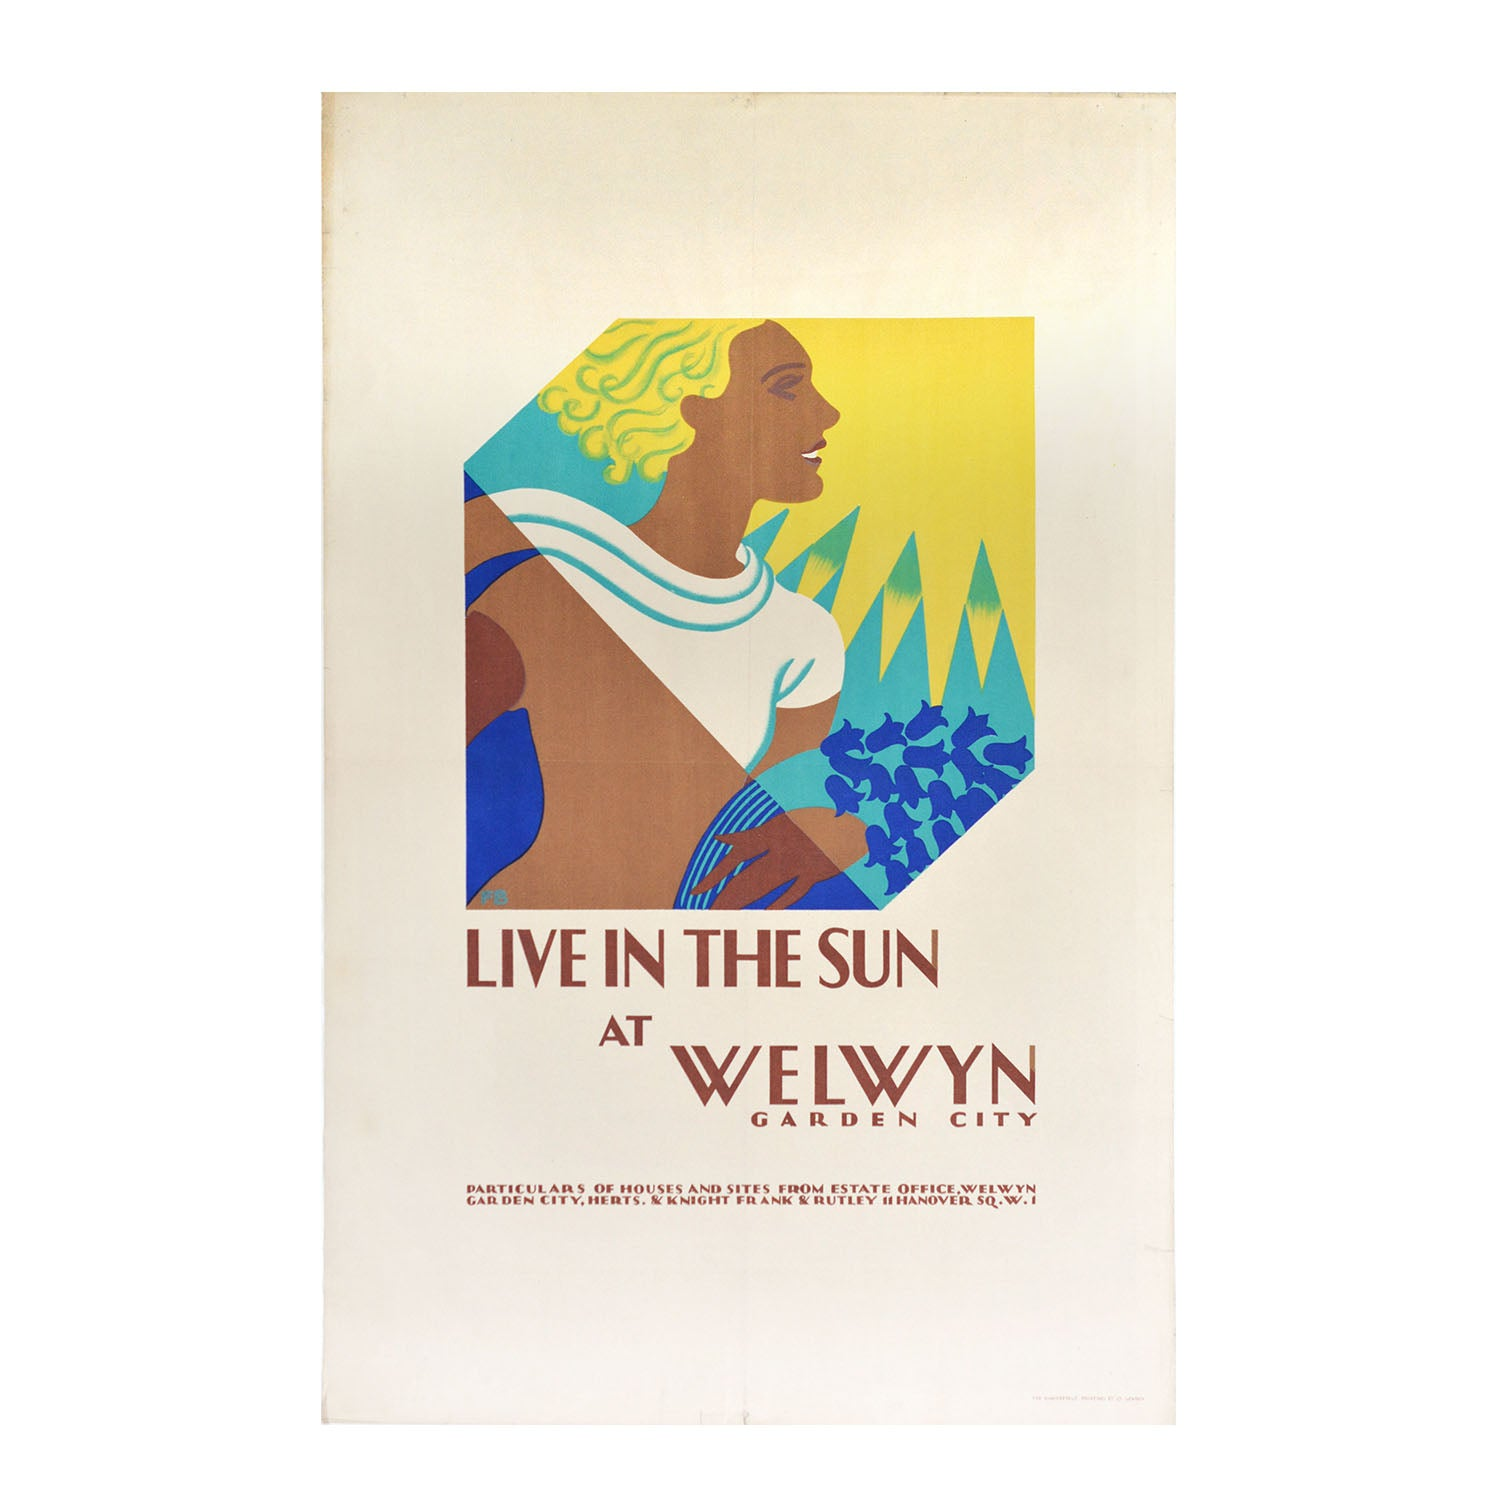 An exceptional, and rare, original poster for Welwyn Garden City by Freda Beard